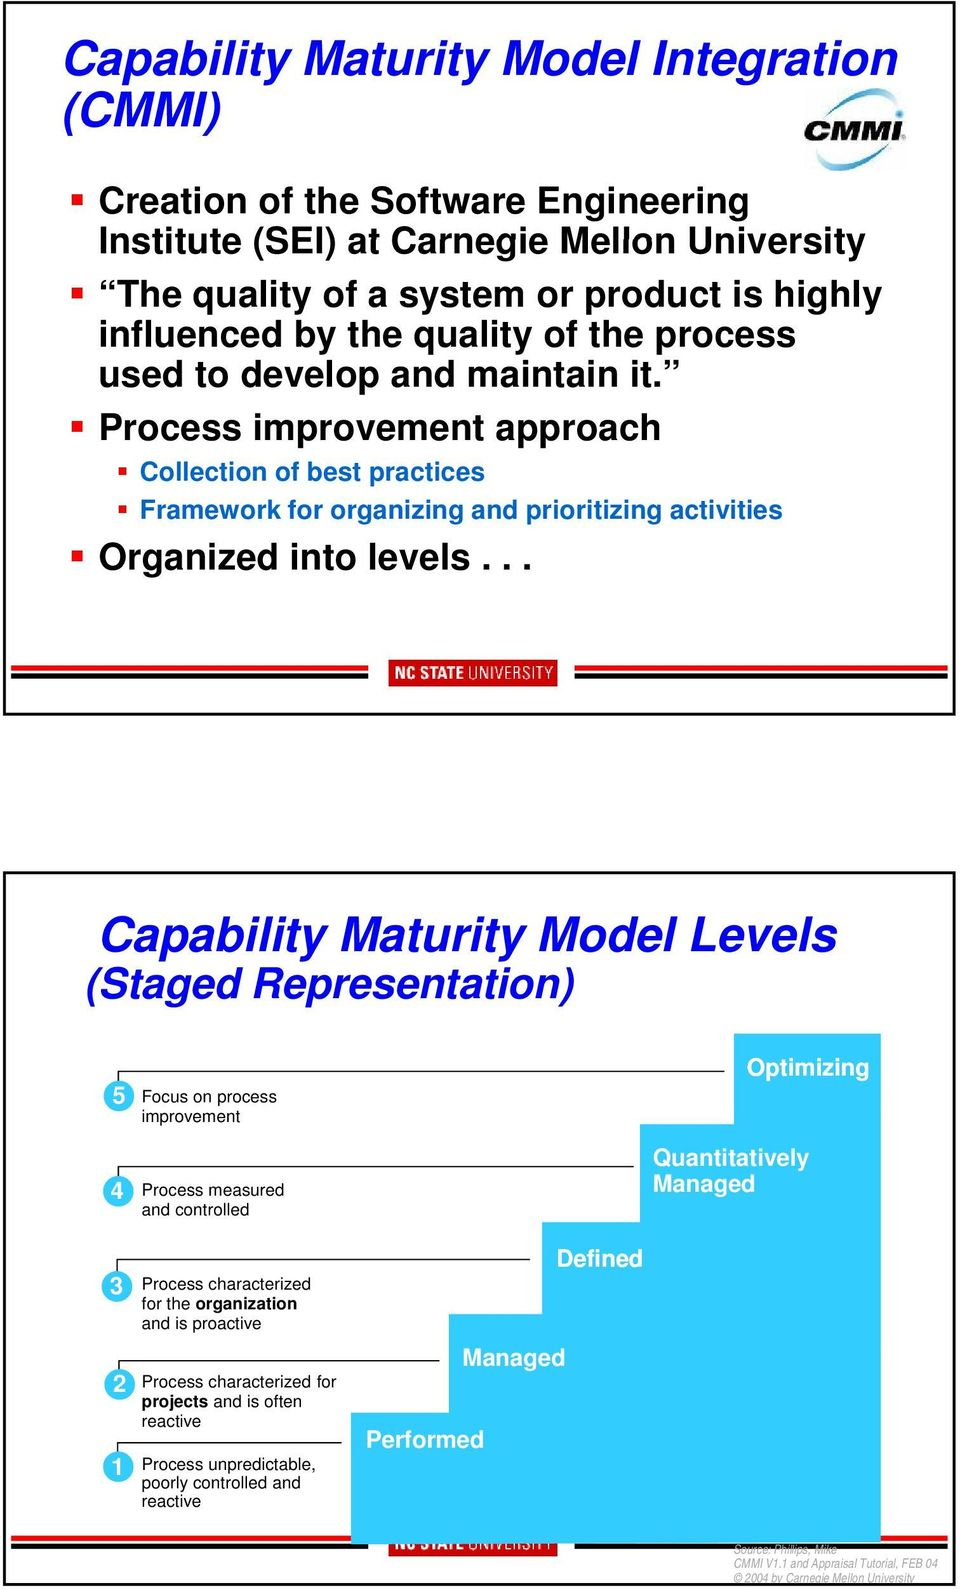 .. Capability Maturity Model Levels (Staged Representation) 5 4 Focus on process improvement Process measured and controlled Optimizing Quantitatively Managed 3 2 1 Process characterized for the